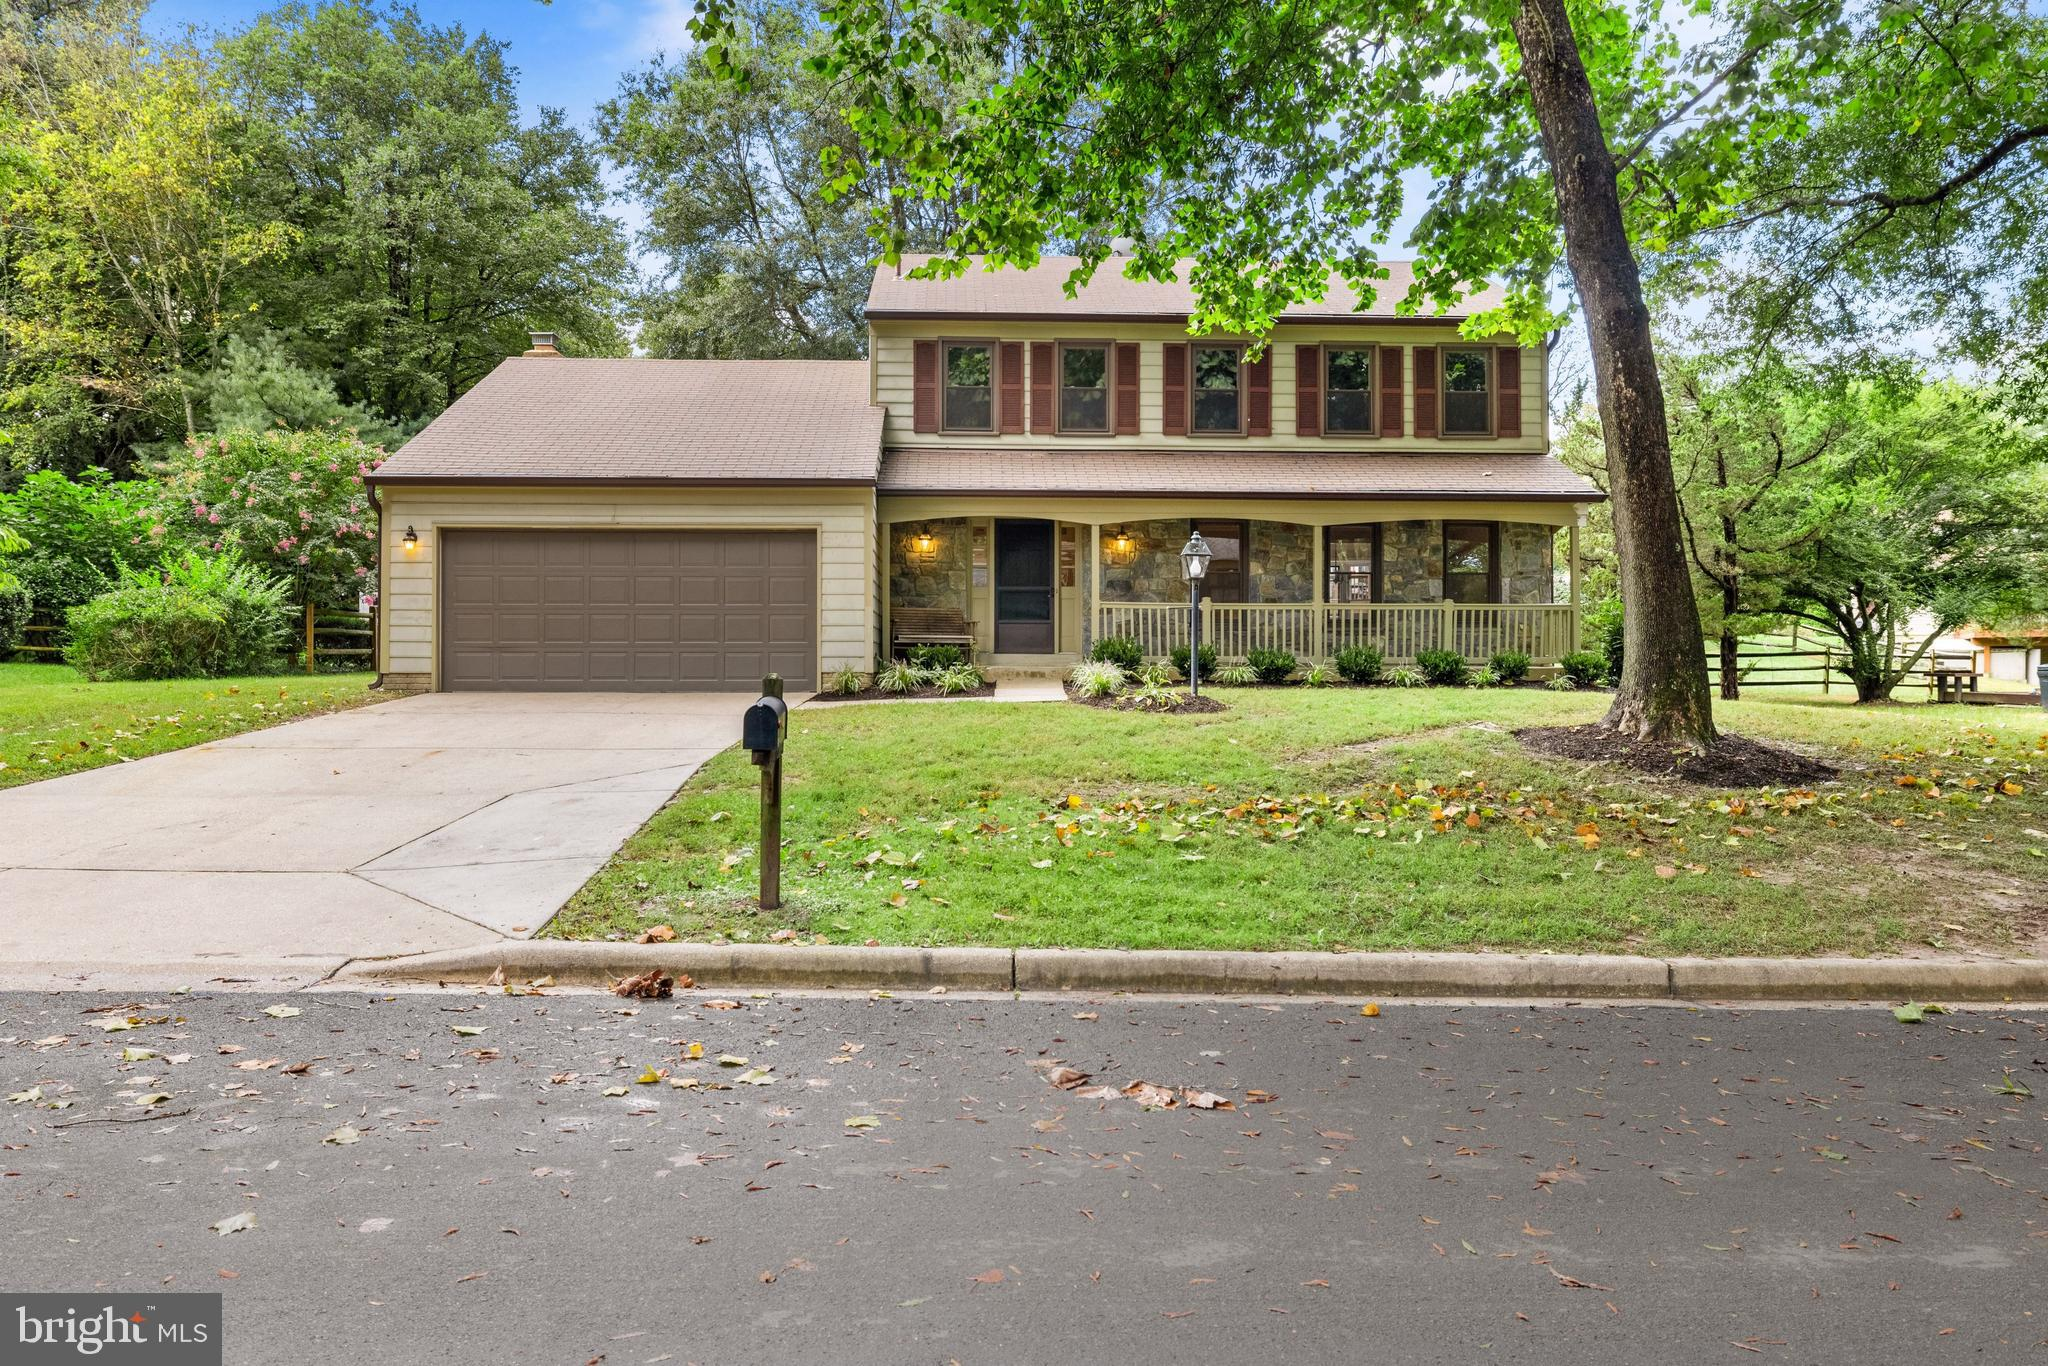 Welcome to this beautifully renovated colonial with inviting covered front porch, two-car garage, an